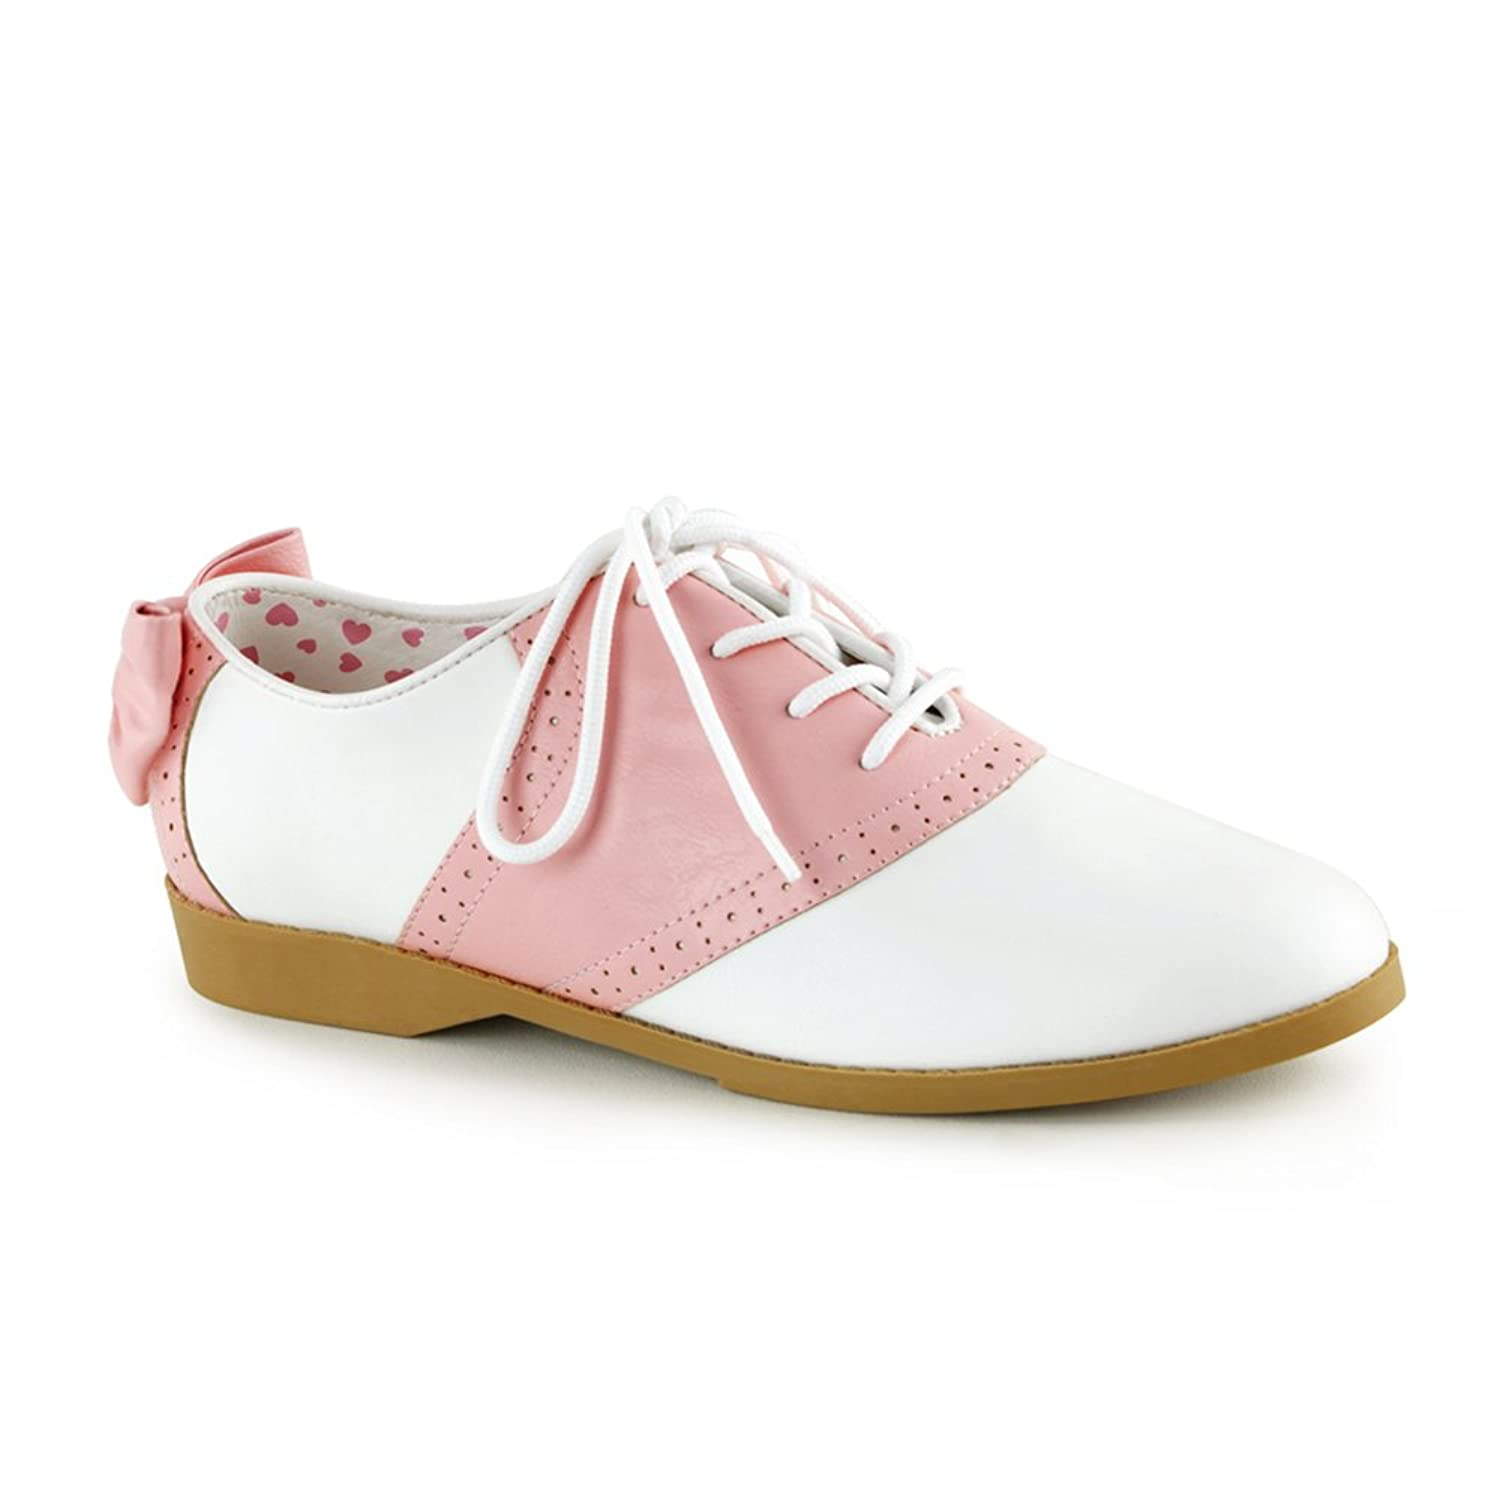 Vintage Inspired Wedding Dresses Funtasma Womens Sad53/Bpwpu Slip-On Loafer $36.25 AT vintagedancer.com